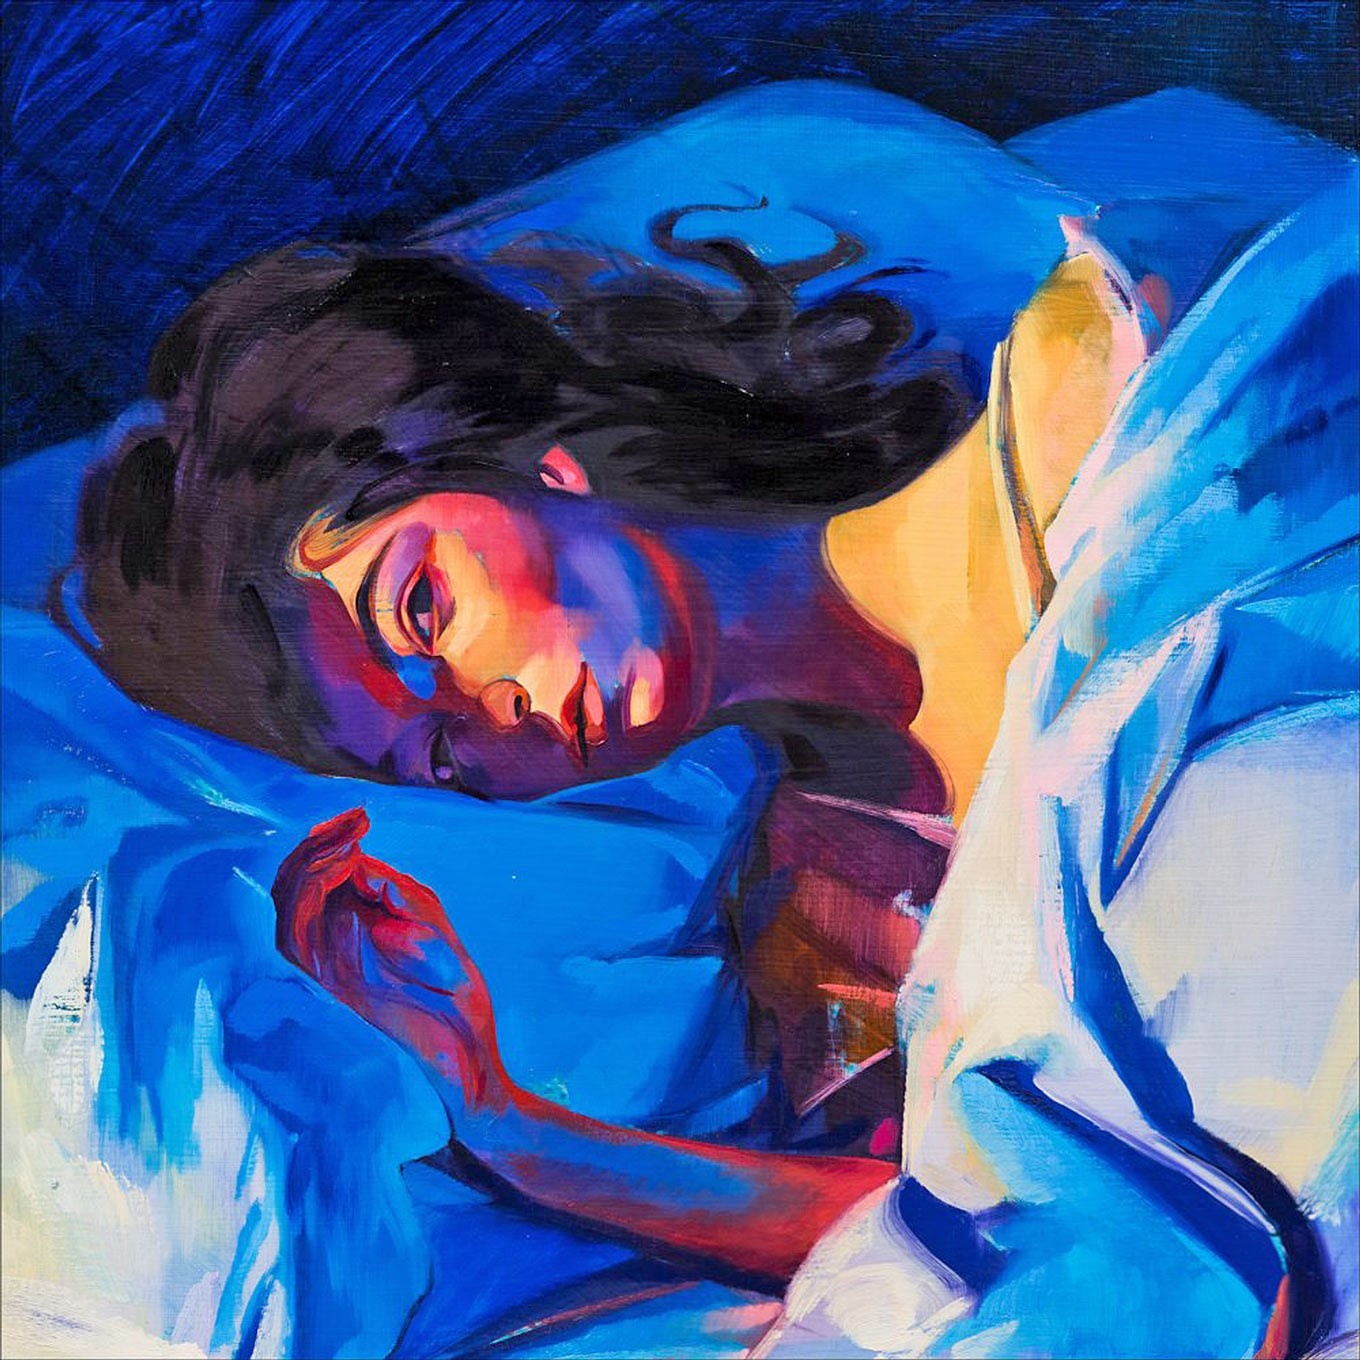 Album Review: 'Melodrama' by Lorde